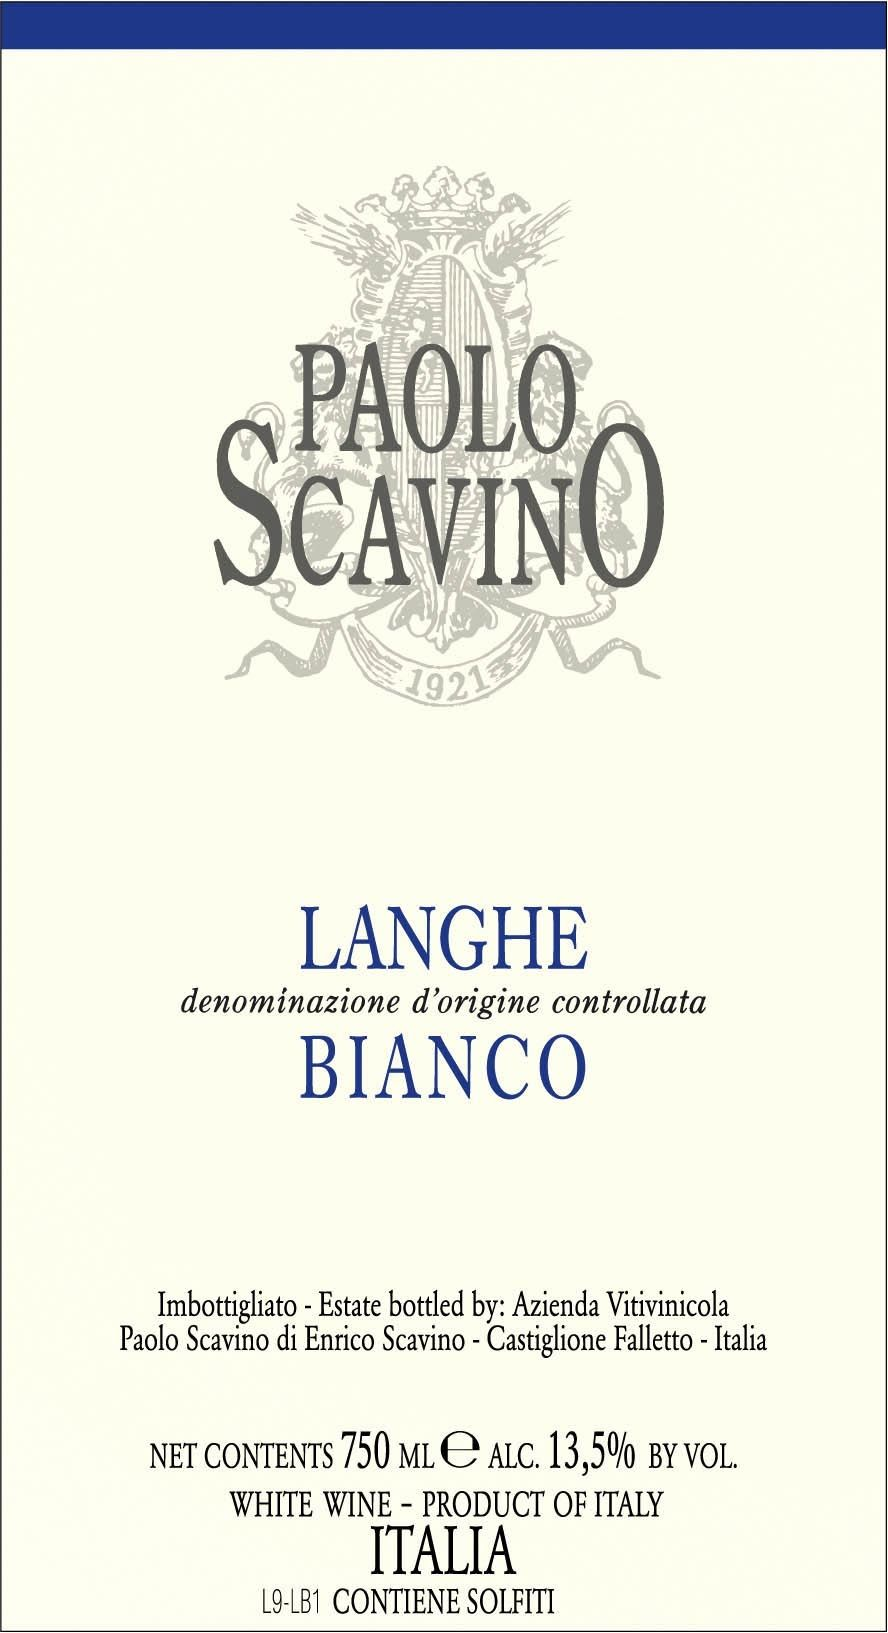 Paolo Scavino Langhe Bianco 2010 Front Label